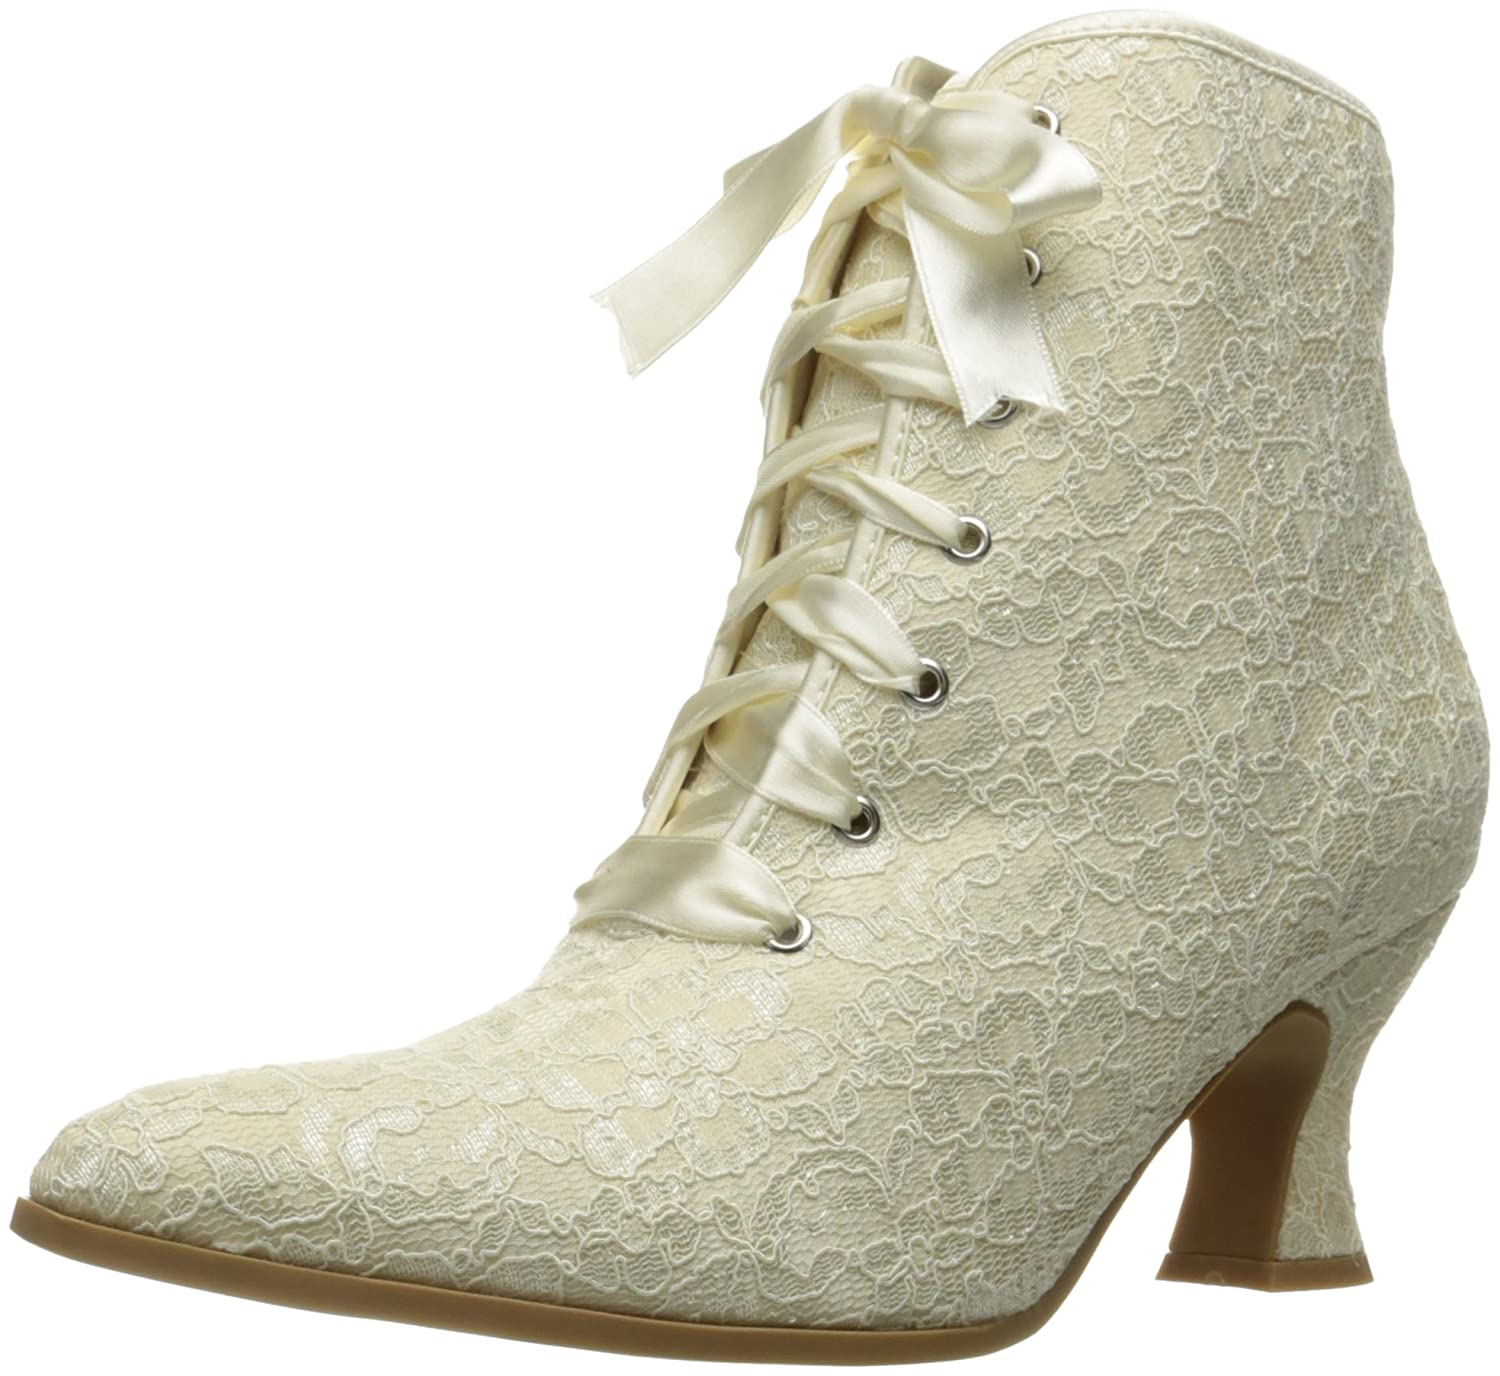 Steampunk Boots & Shoes, Heels & Flats Ellie Shoes Womens 253-elizabeth Ankle Bootie $43.93 AT vintagedancer.com